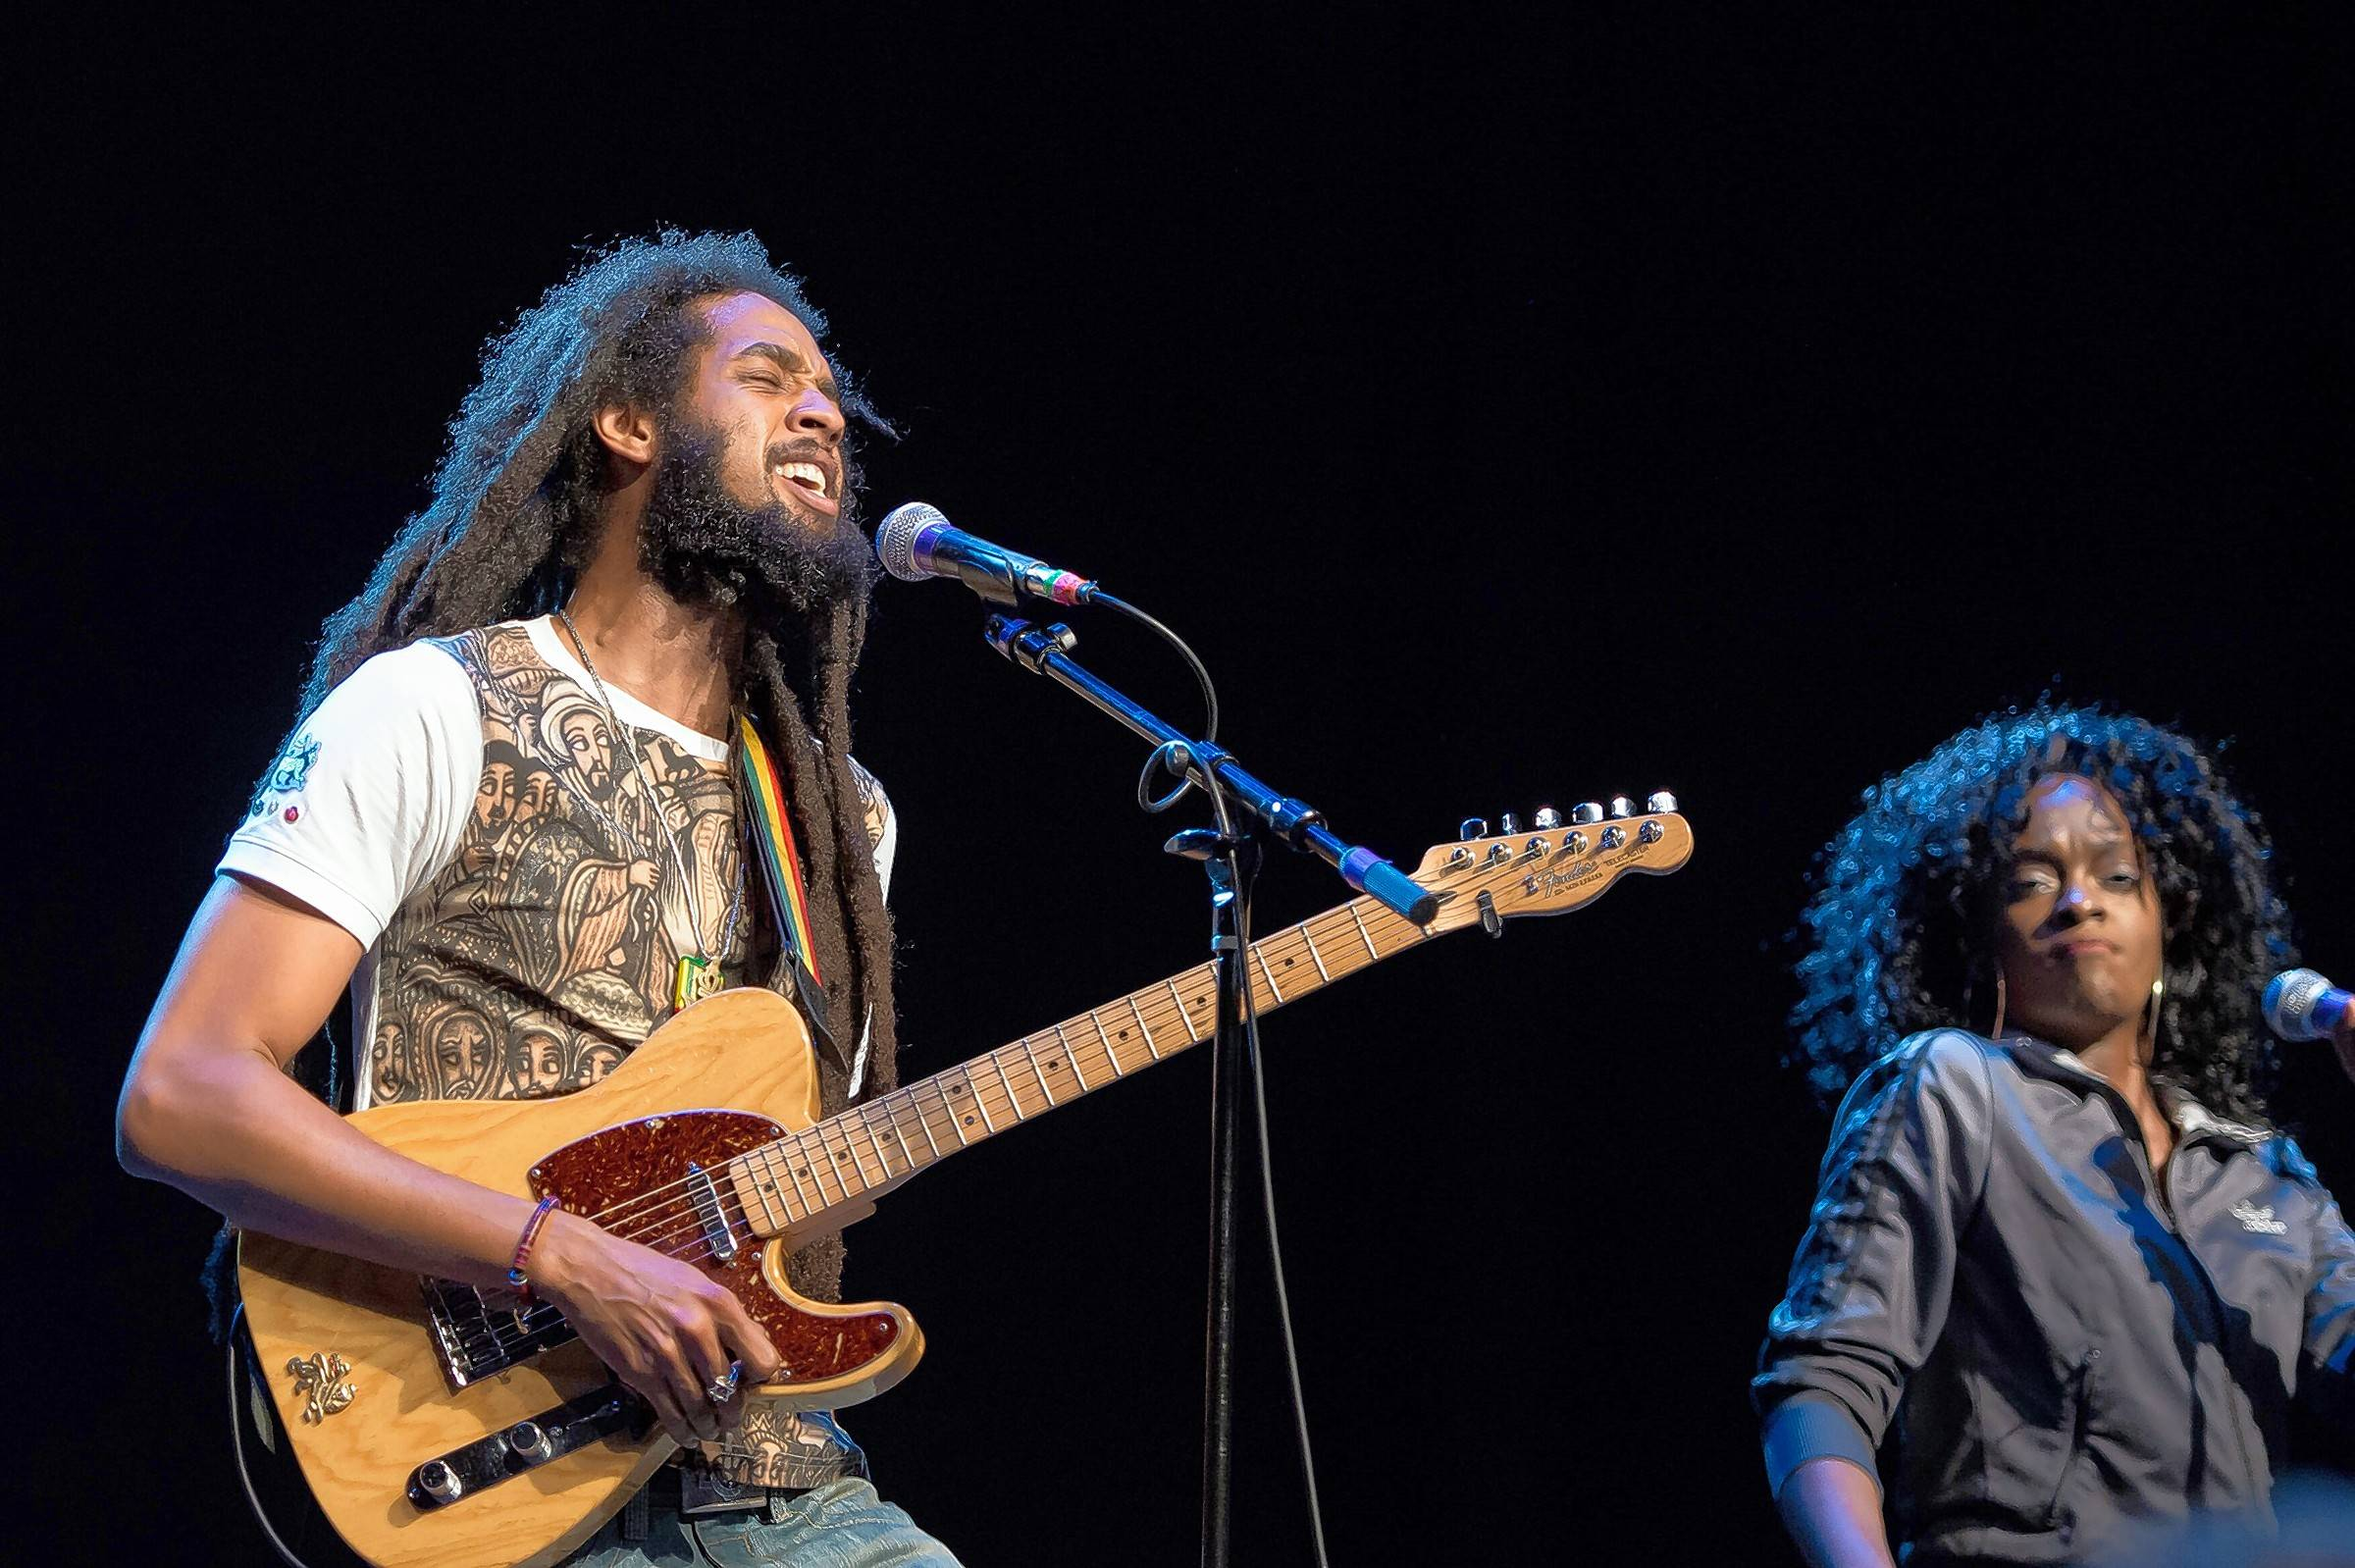 Singers Josh Barrett and Shema McGregor of the Wailers perform at the Arcada Theatre.